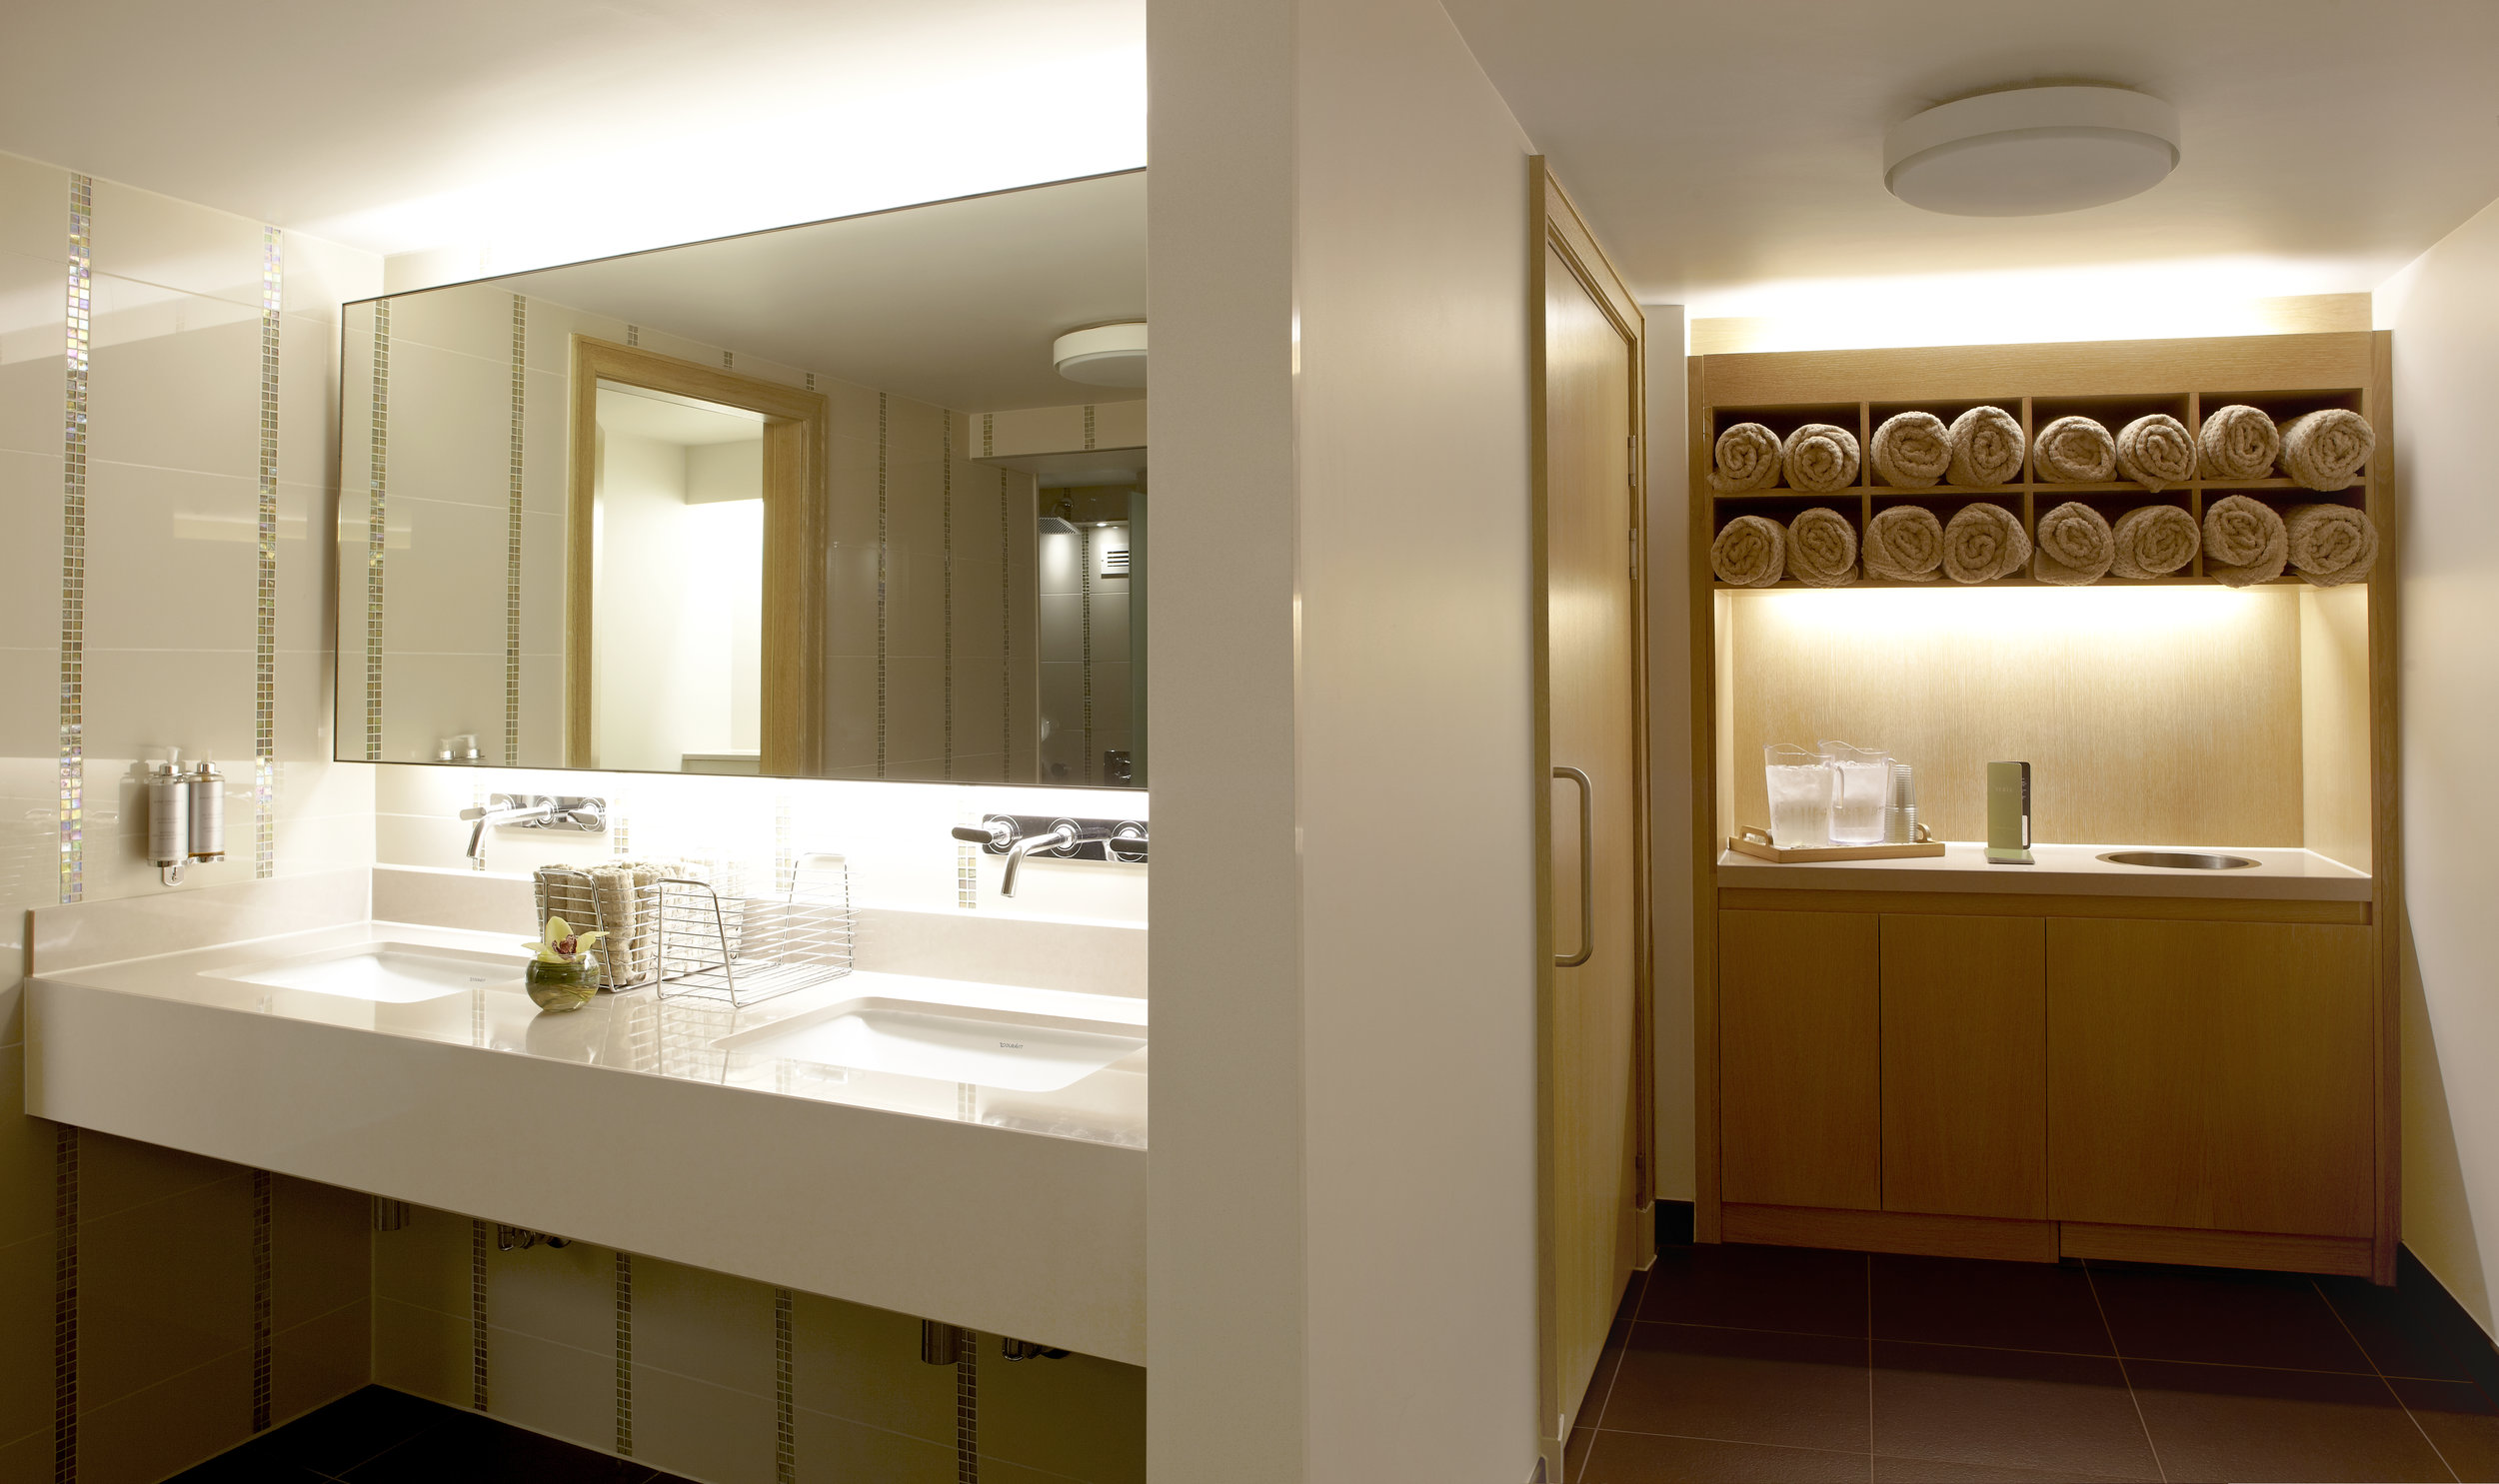 changing facilities with luxury amenities